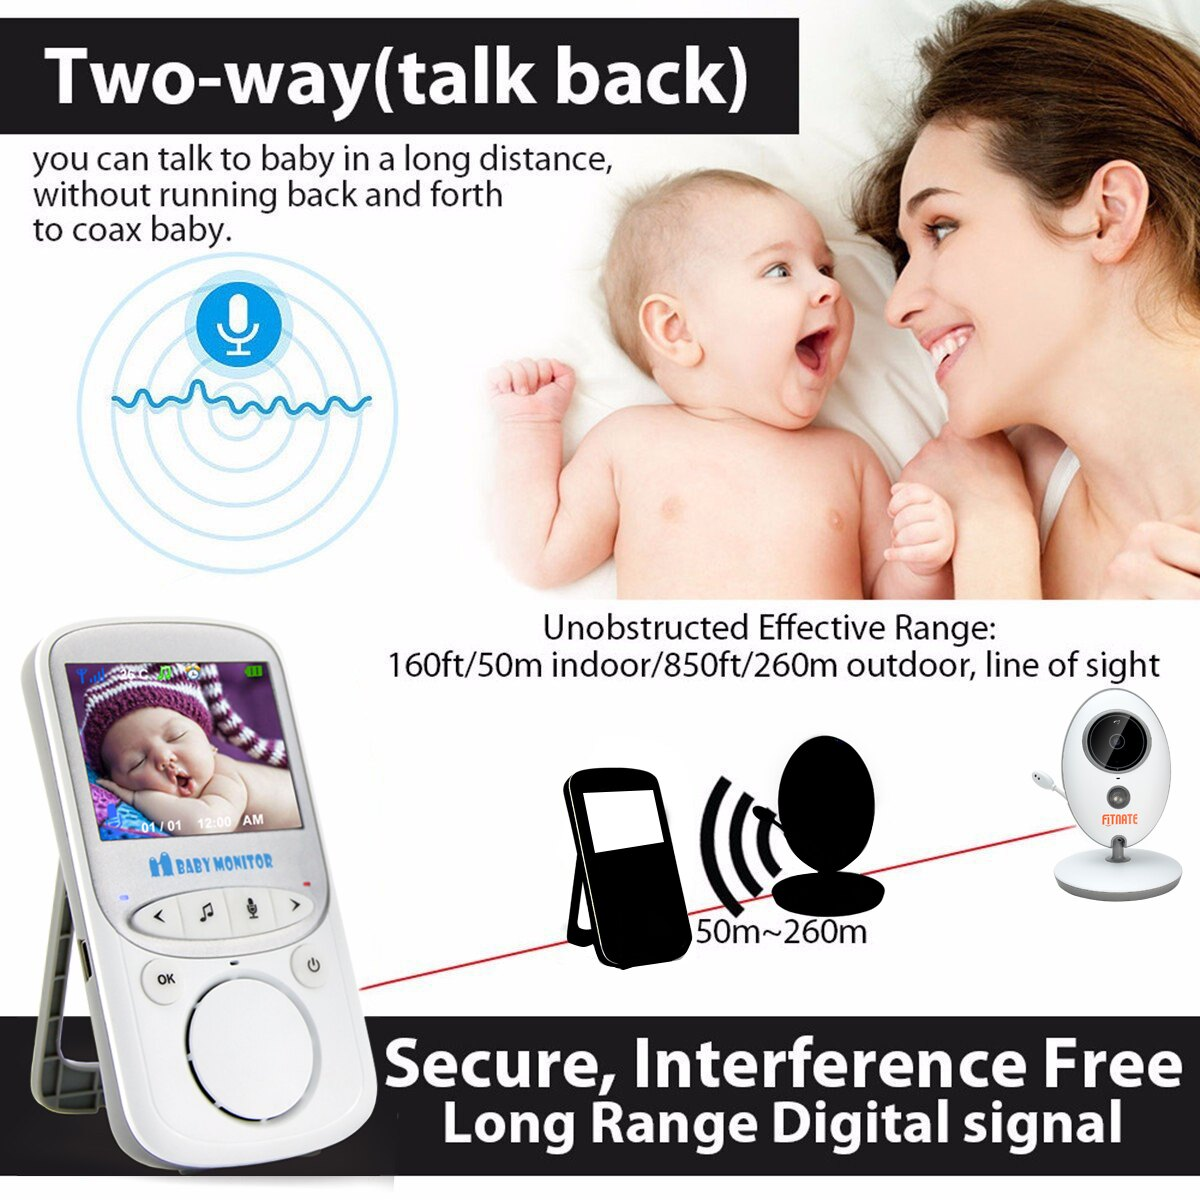 Fitnate®  Night Vision Wireless Video Baby Monitor with Digital Camera,Temperature Monitoring & 2 Way Talkback System, Built-in Remote Lullabies, More Strong Signal, Larger Monitor 2